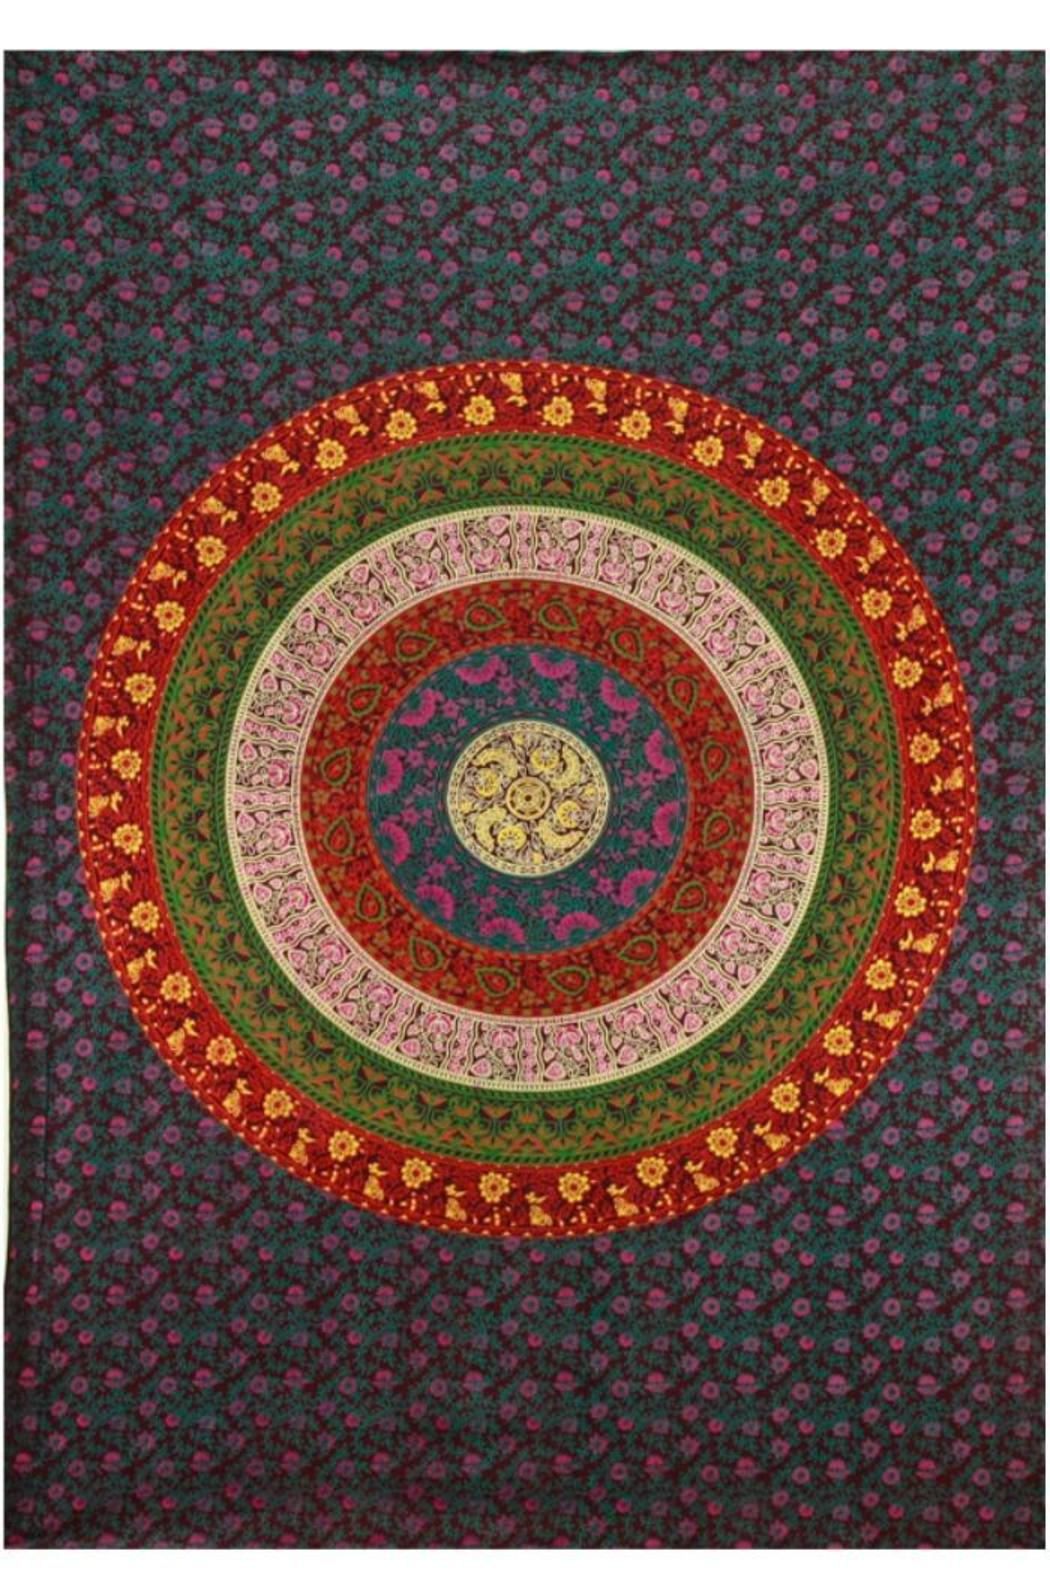 Sunshine Joy Flower Circle Tapestry - Main Image